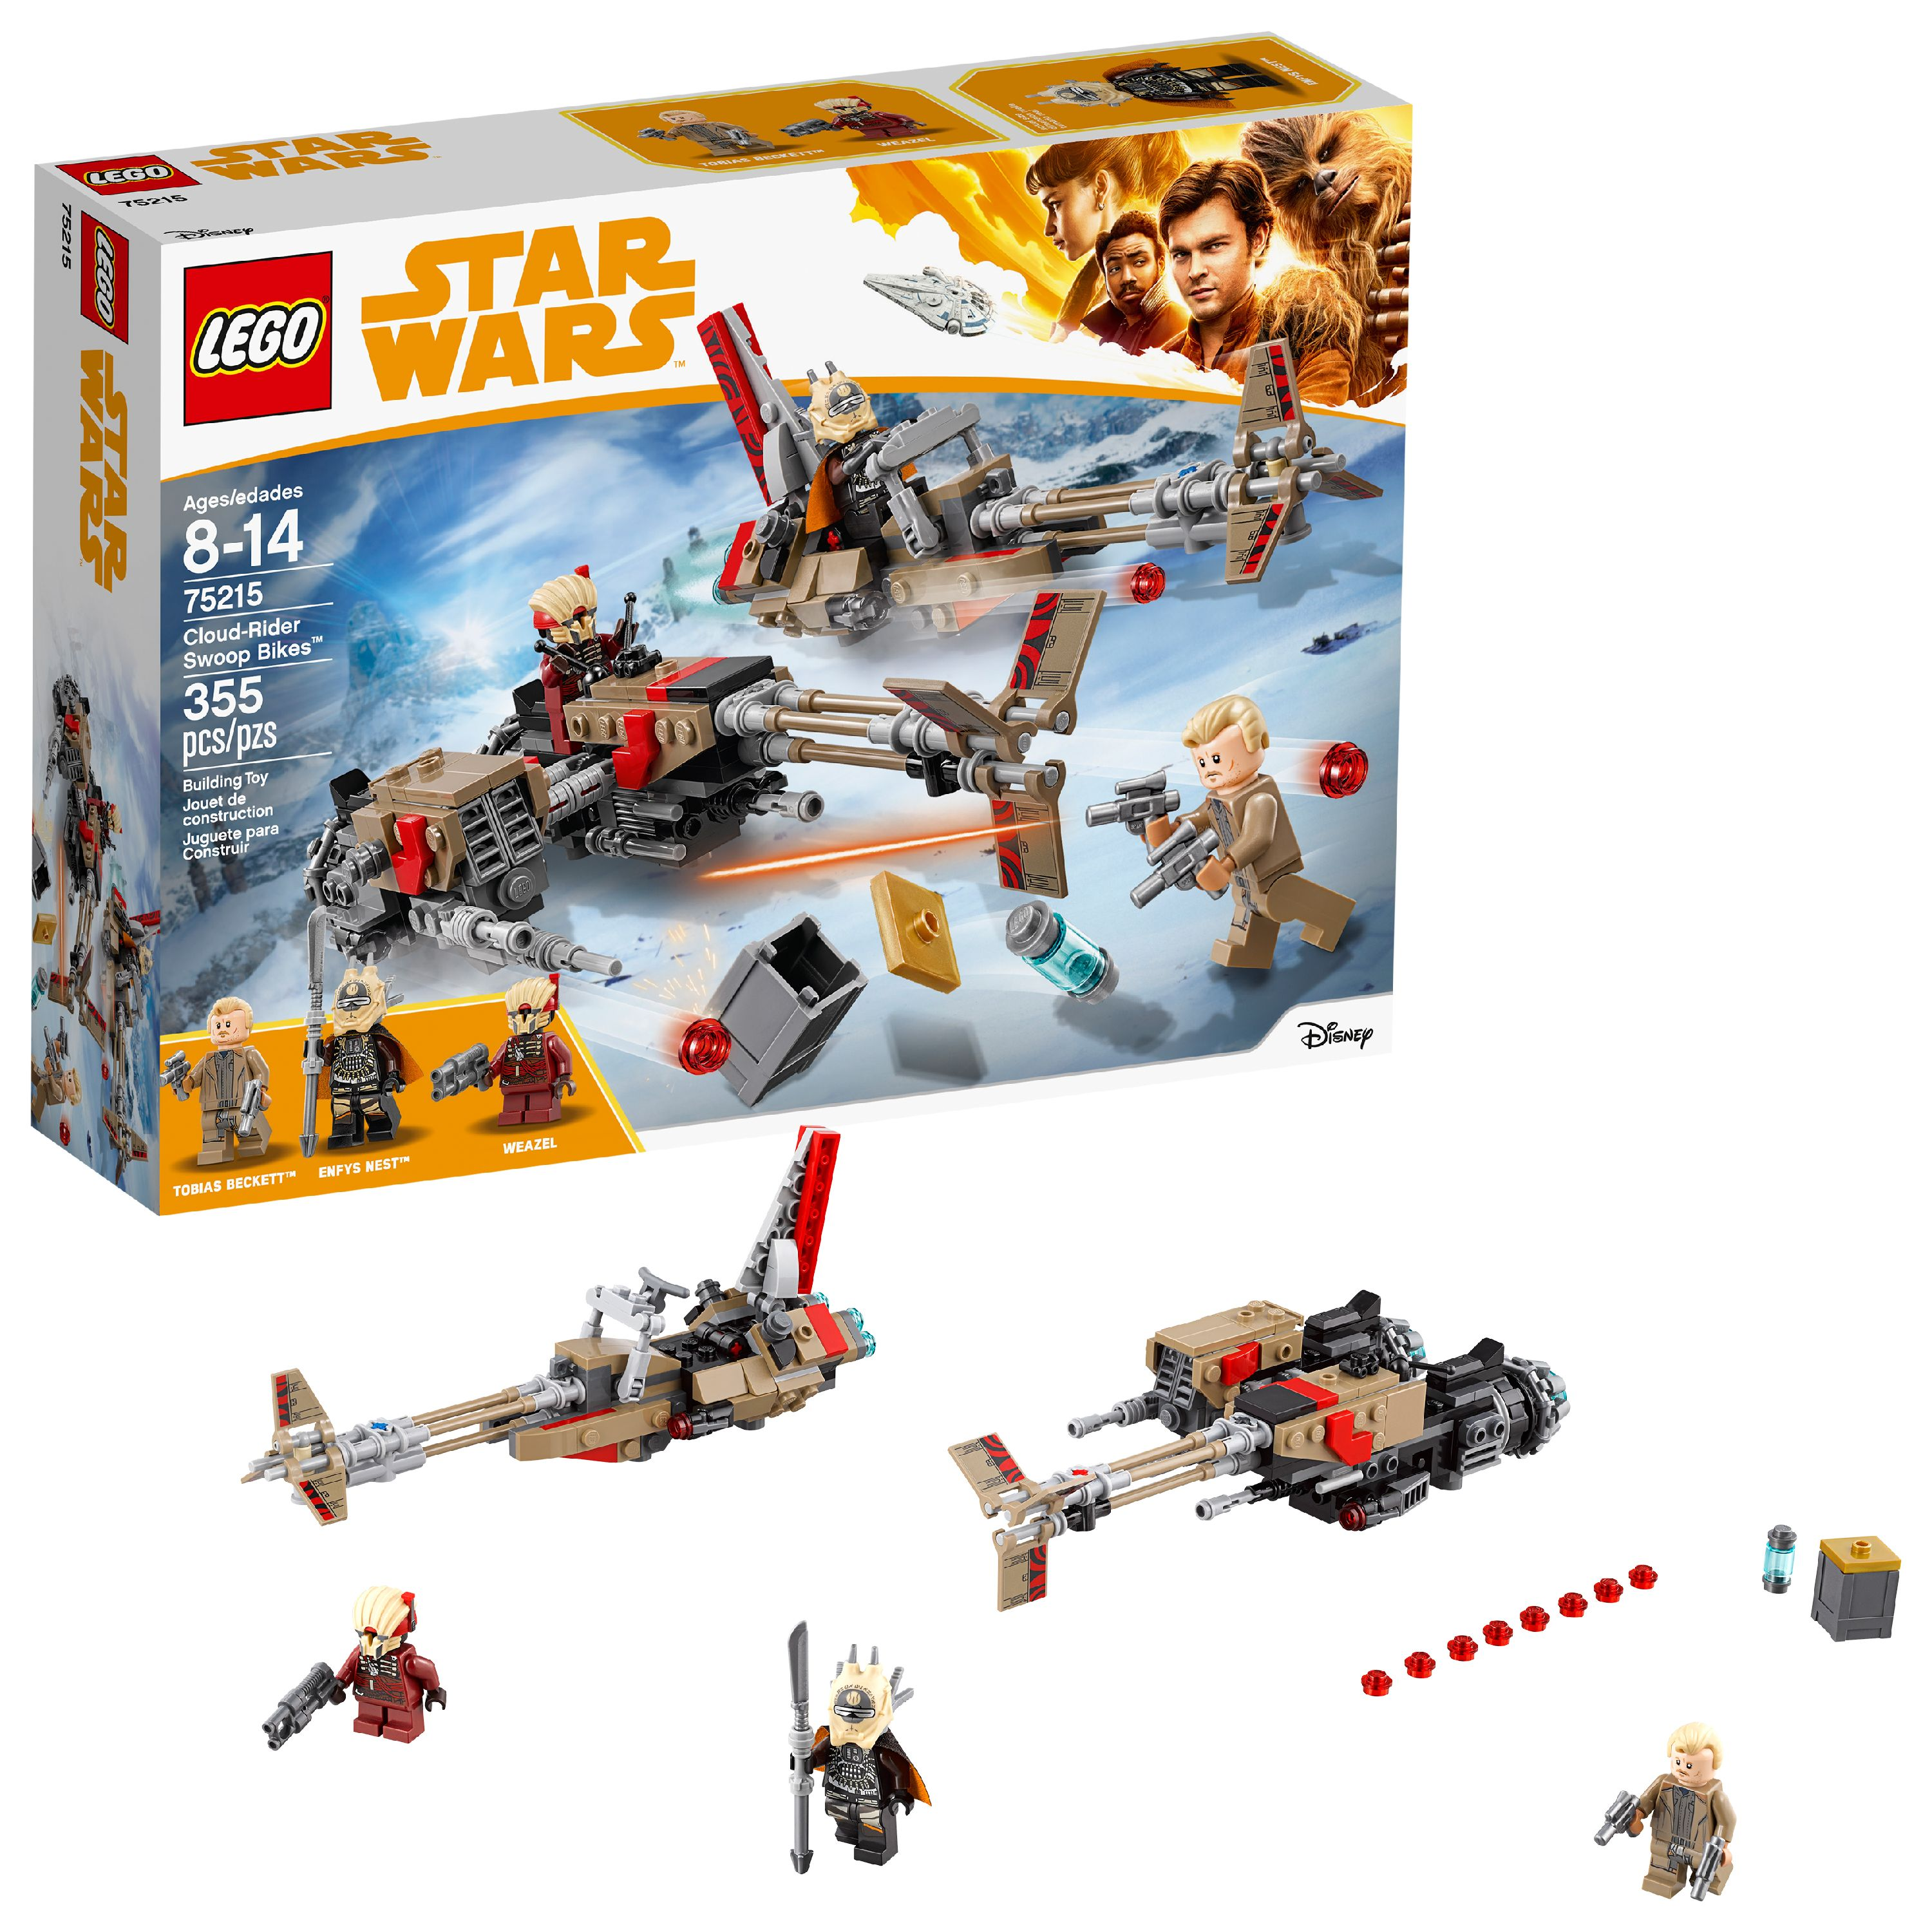 LEGO Star Wars TM Cloud-Rider Swoop Bikes 75215 Building Set